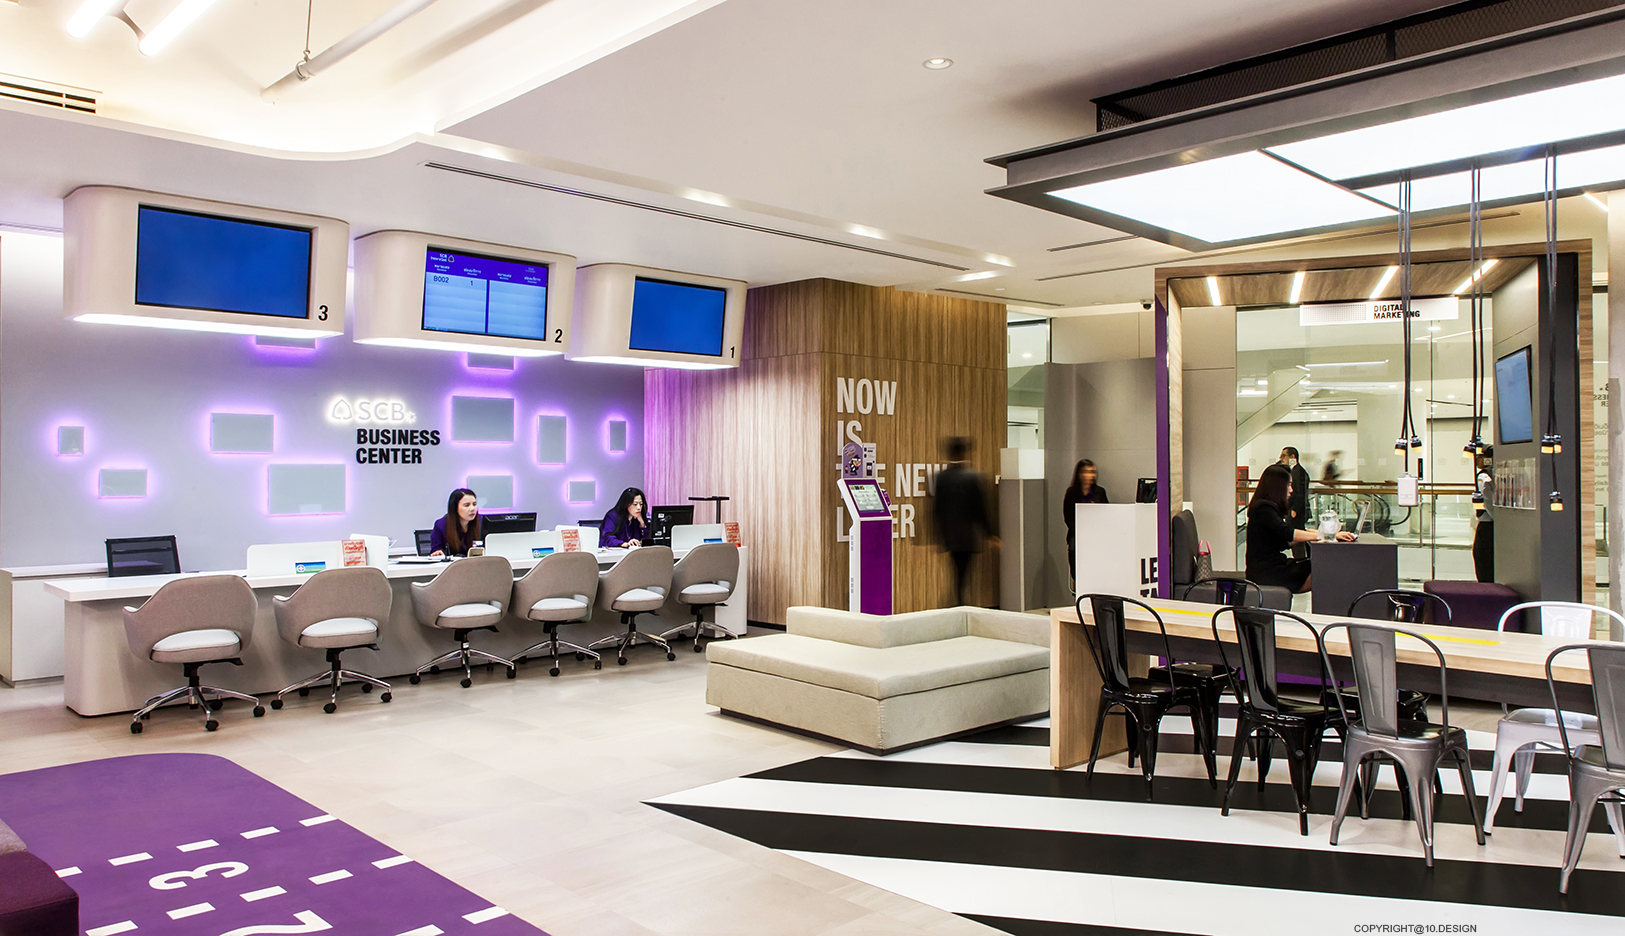 10 DESIGN SCB BANKING BUSINESS CENTER CENTRAL WORLD INTERIOR COMMERCIAL 09